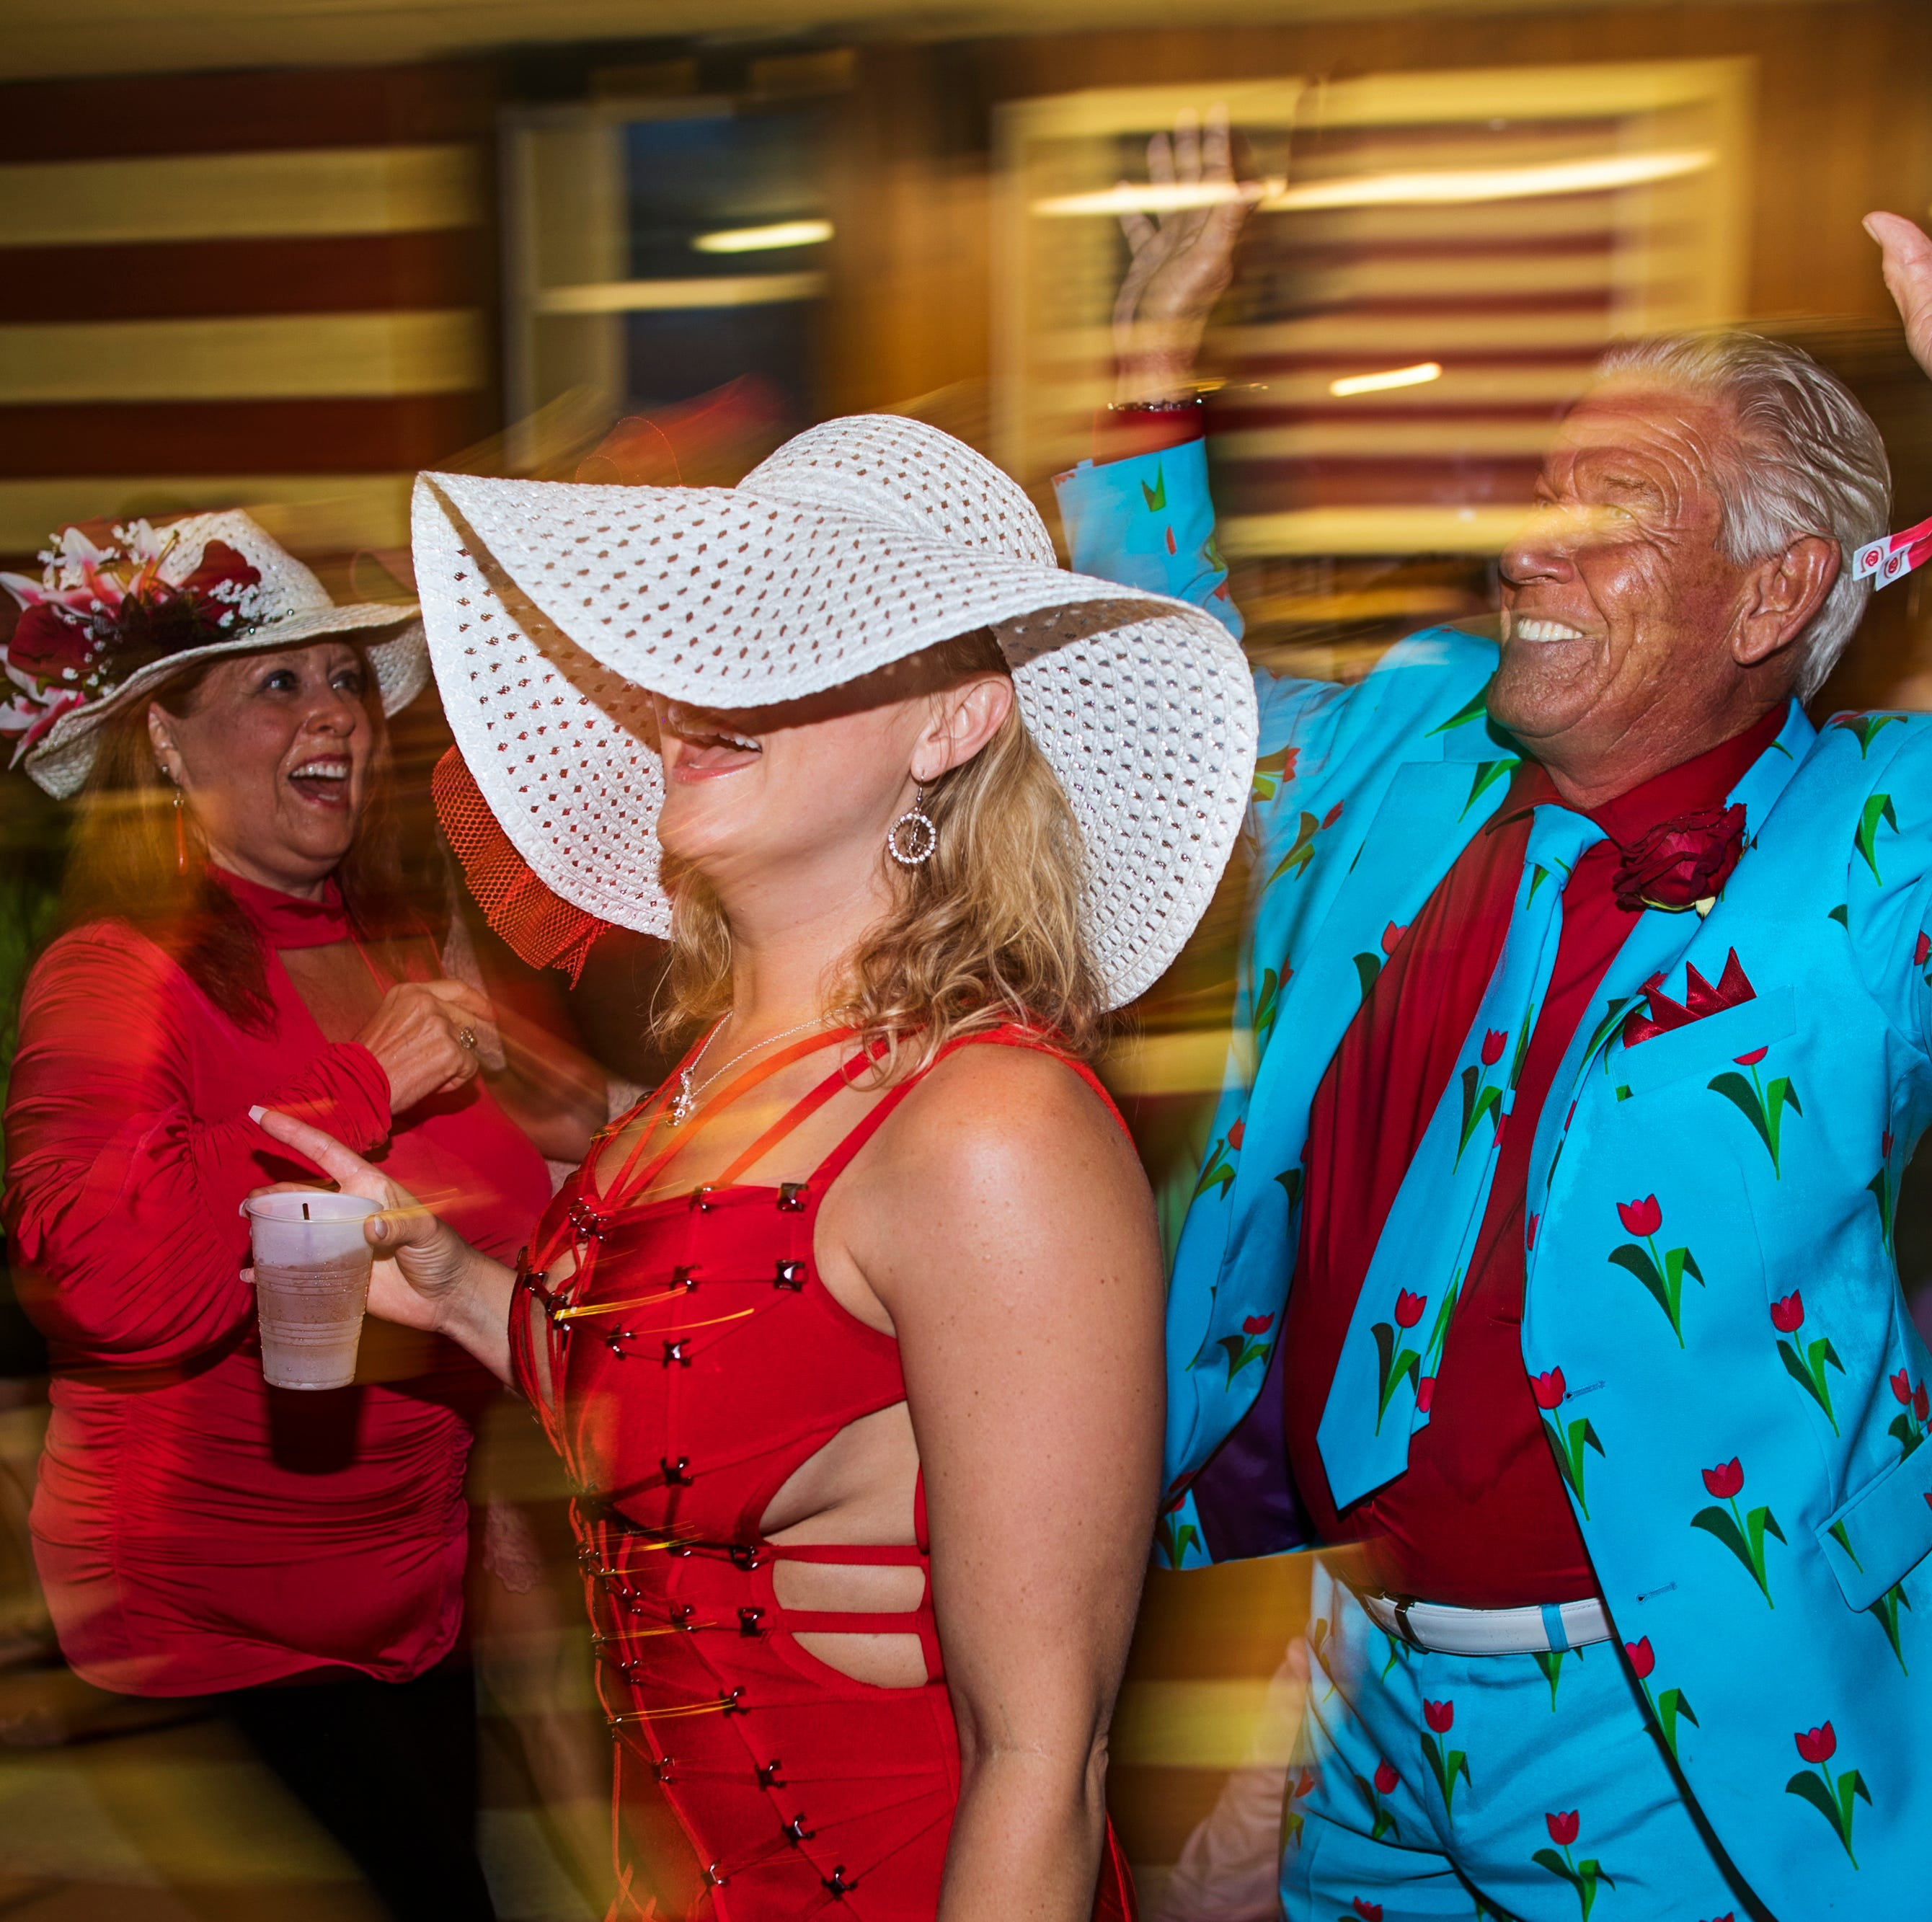 For businesses, the Kentucky Derby is a chance to bet big on wooing clients